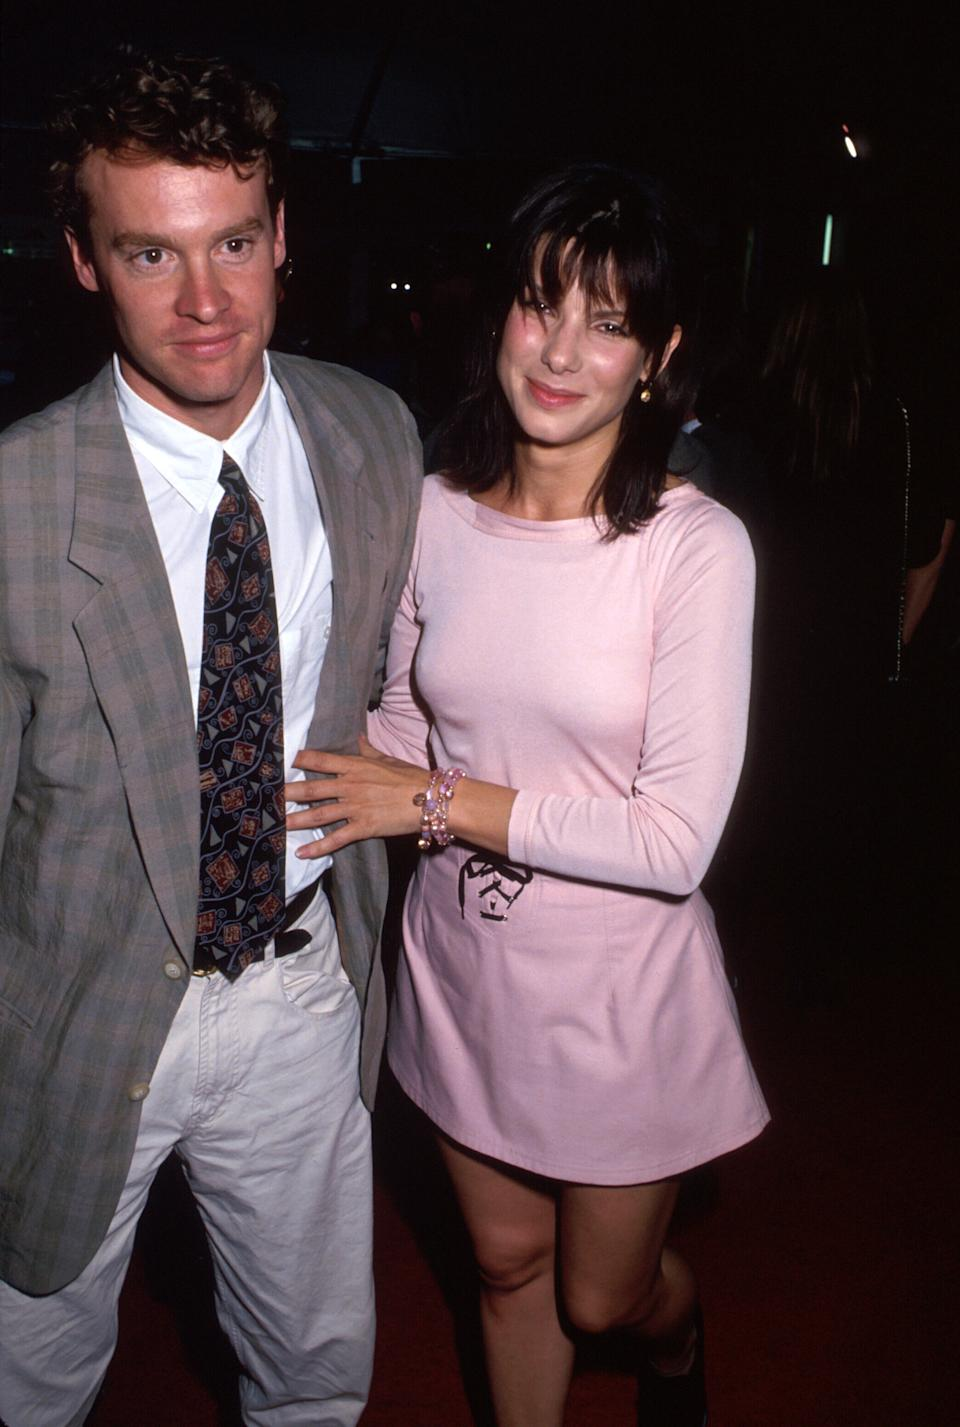 Actors Tate Donovan and Sandra Bullock.  (Photo by Time Life Pictures/DMI/The LIFE Picture Collection via Getty Images)